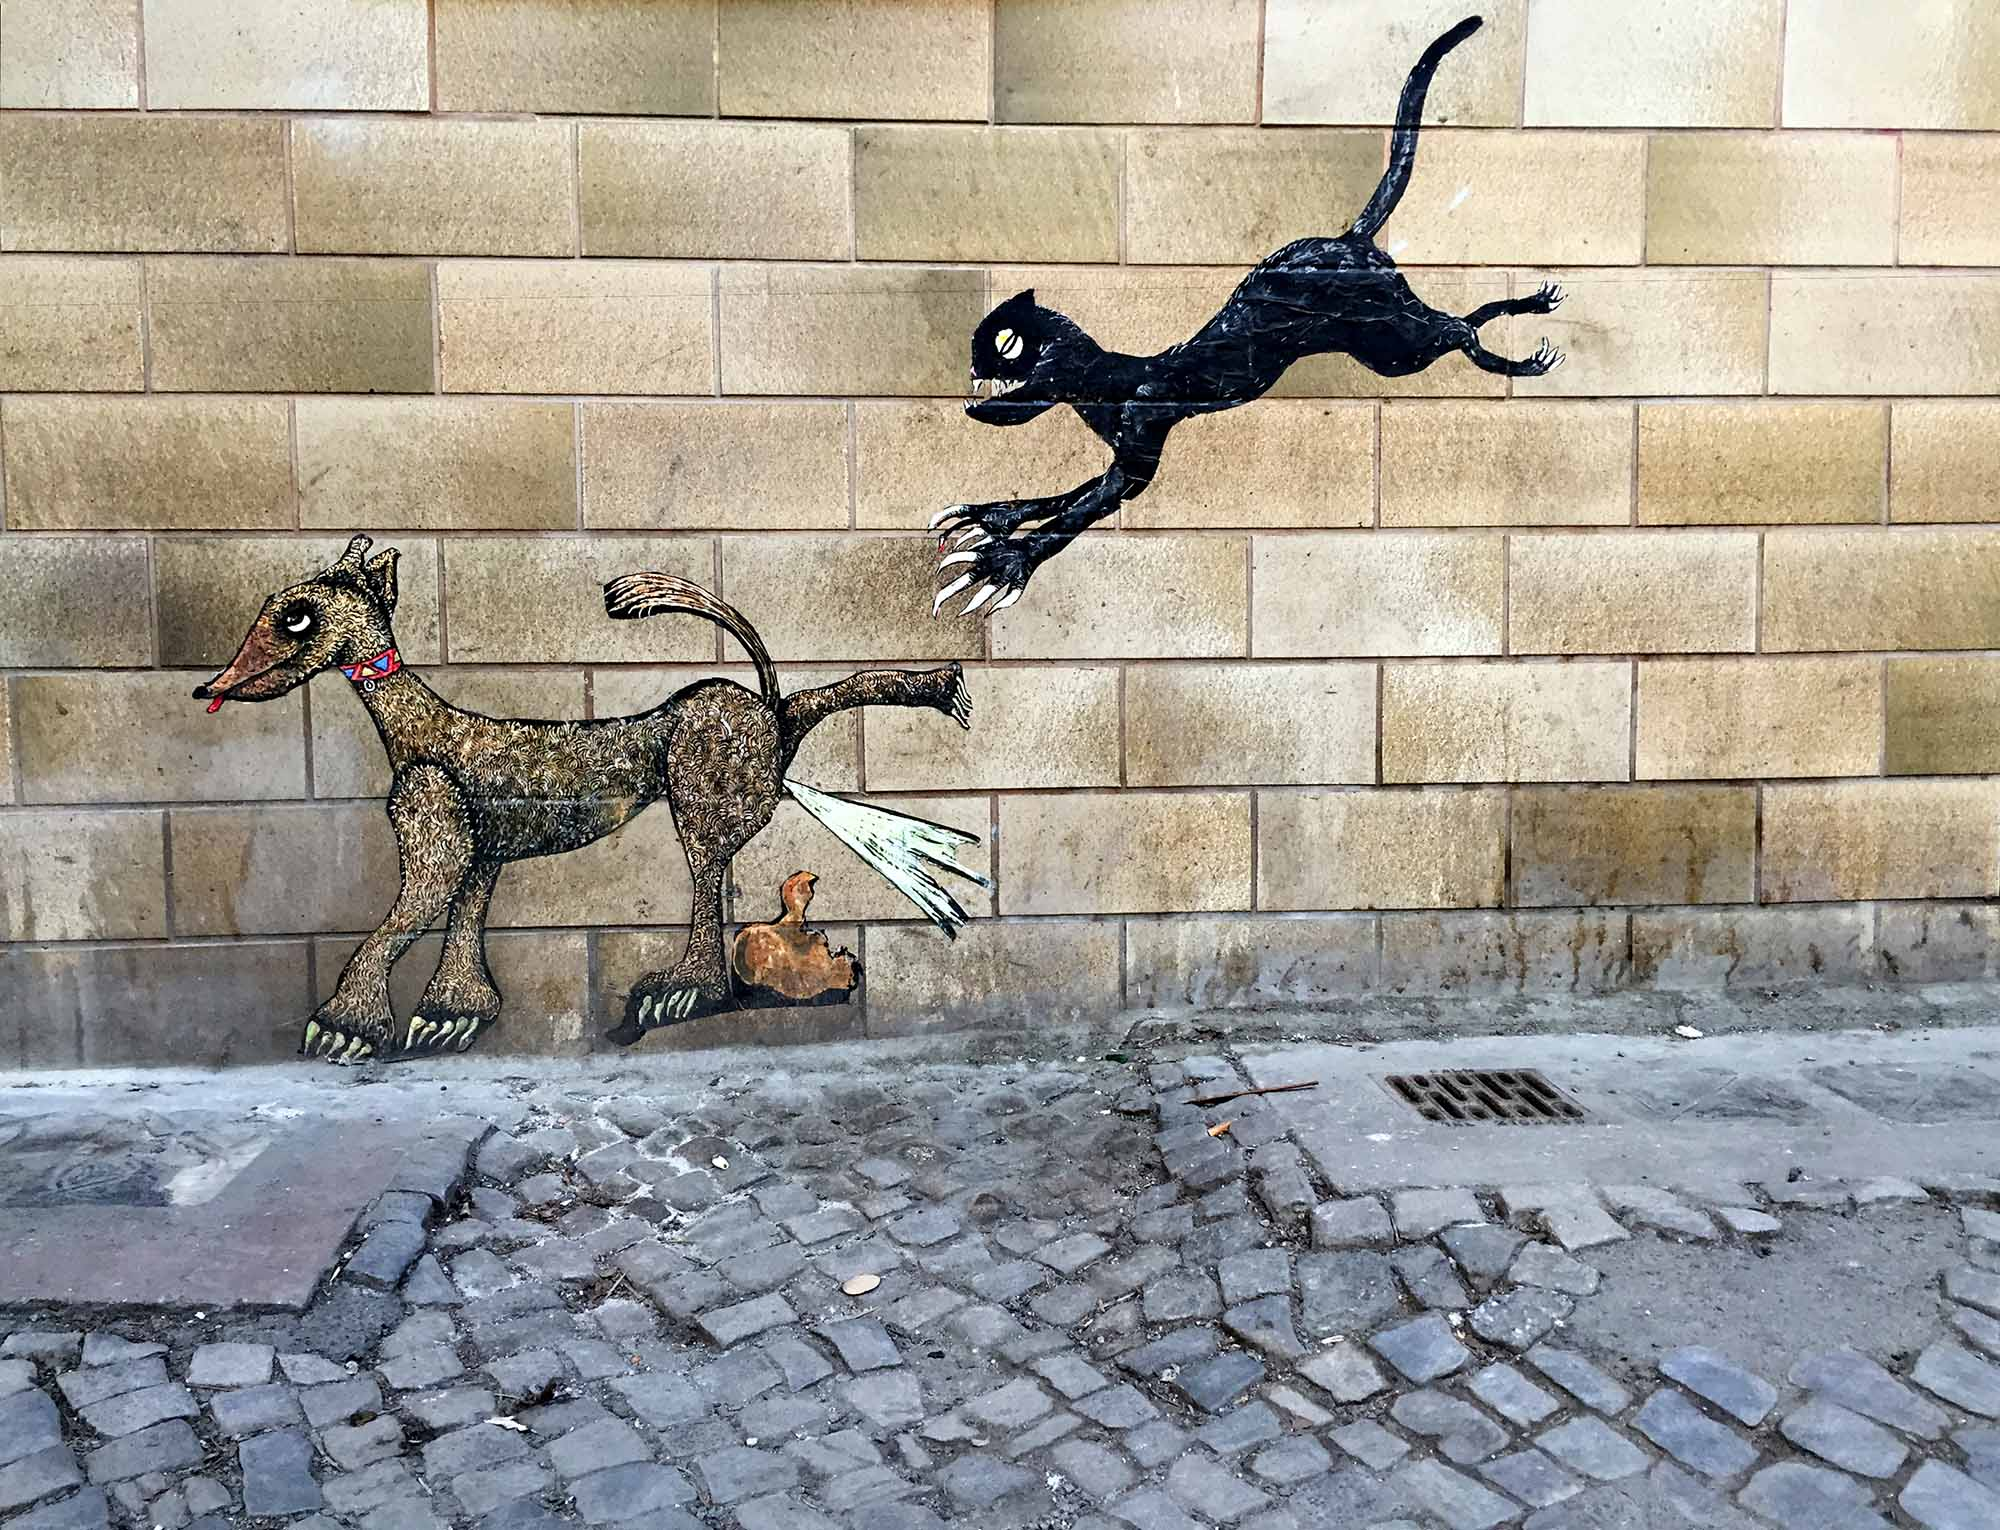 Dogs and cats in Berlin